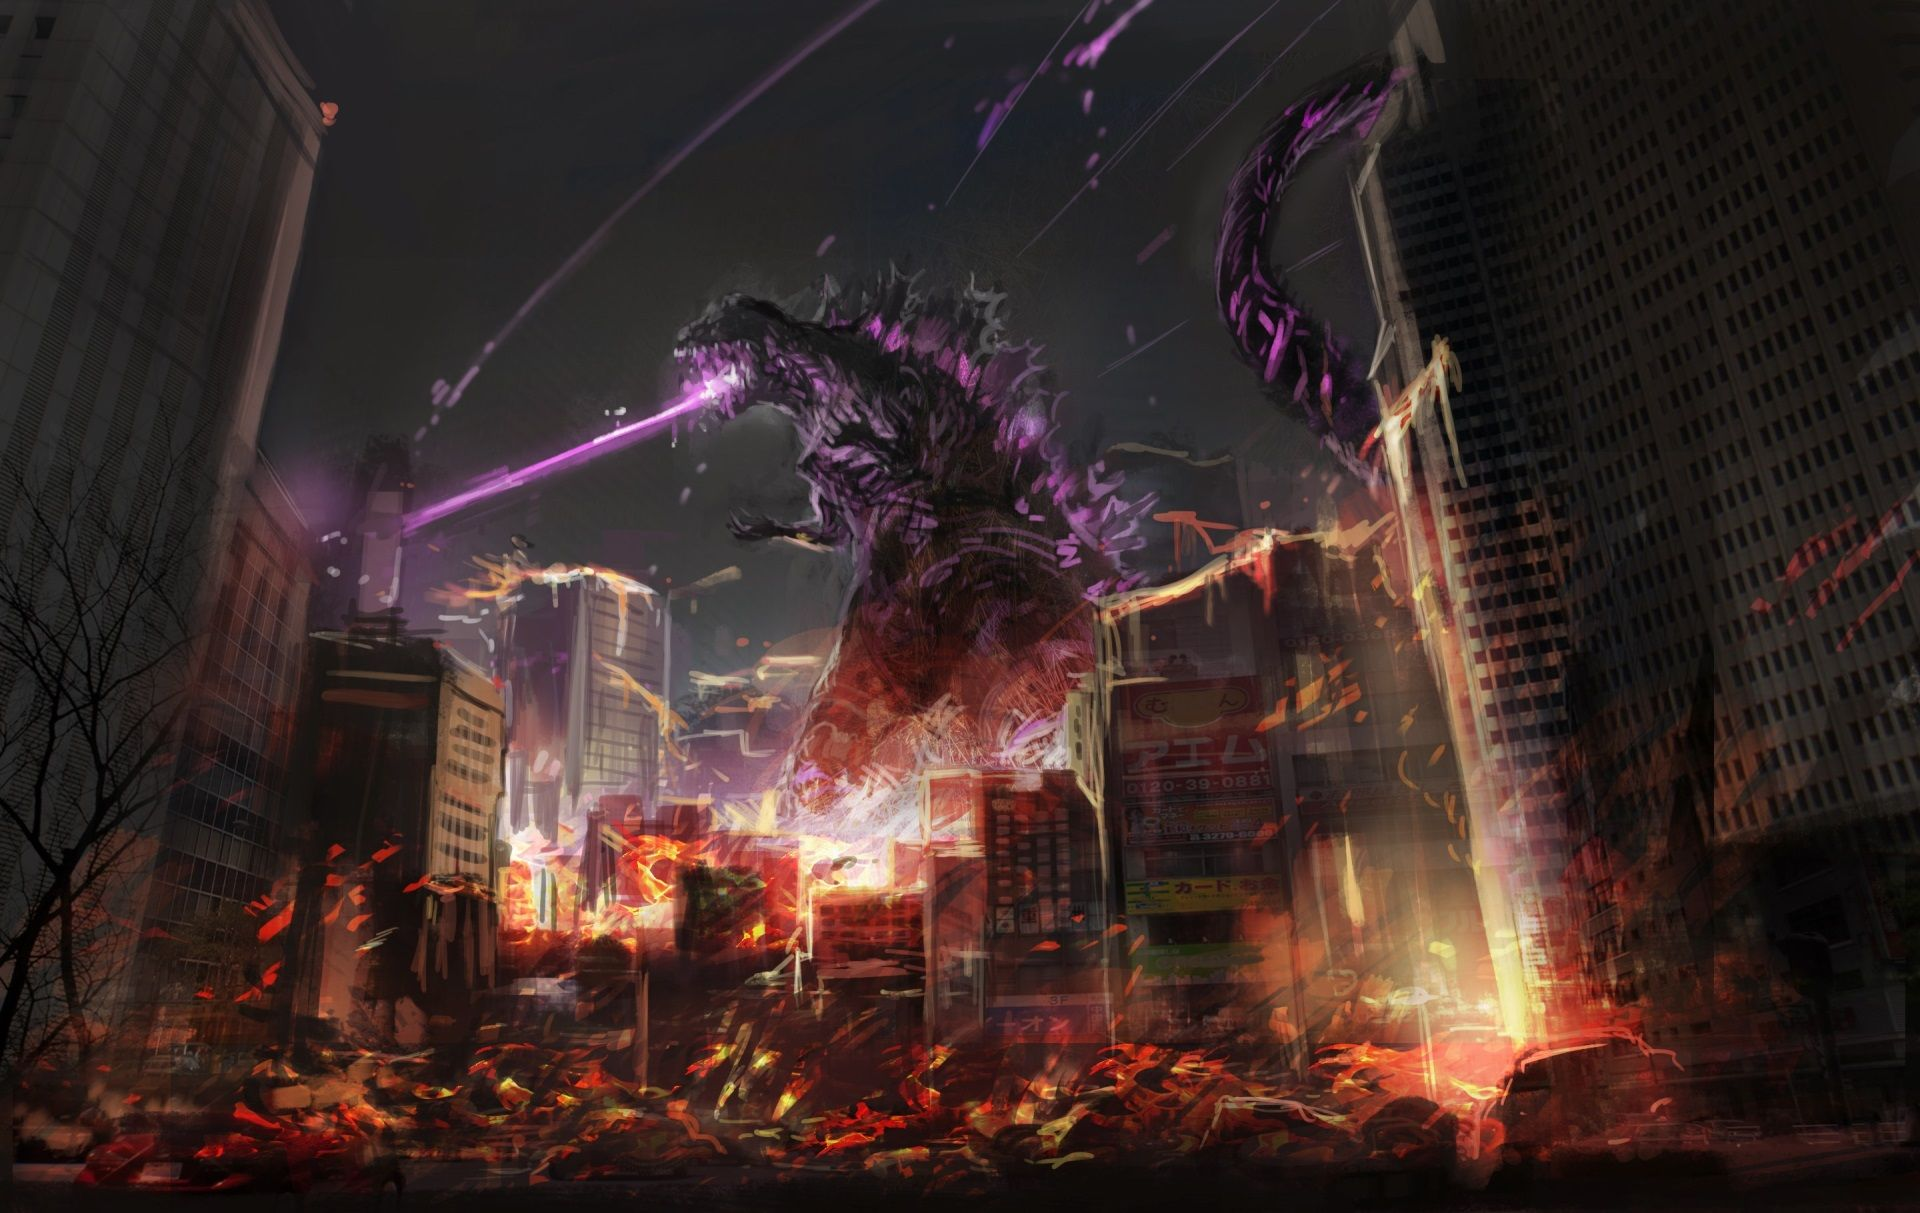 1920x1213 Godzilla Hd Wallpaper Amazing Godzilla And Friends